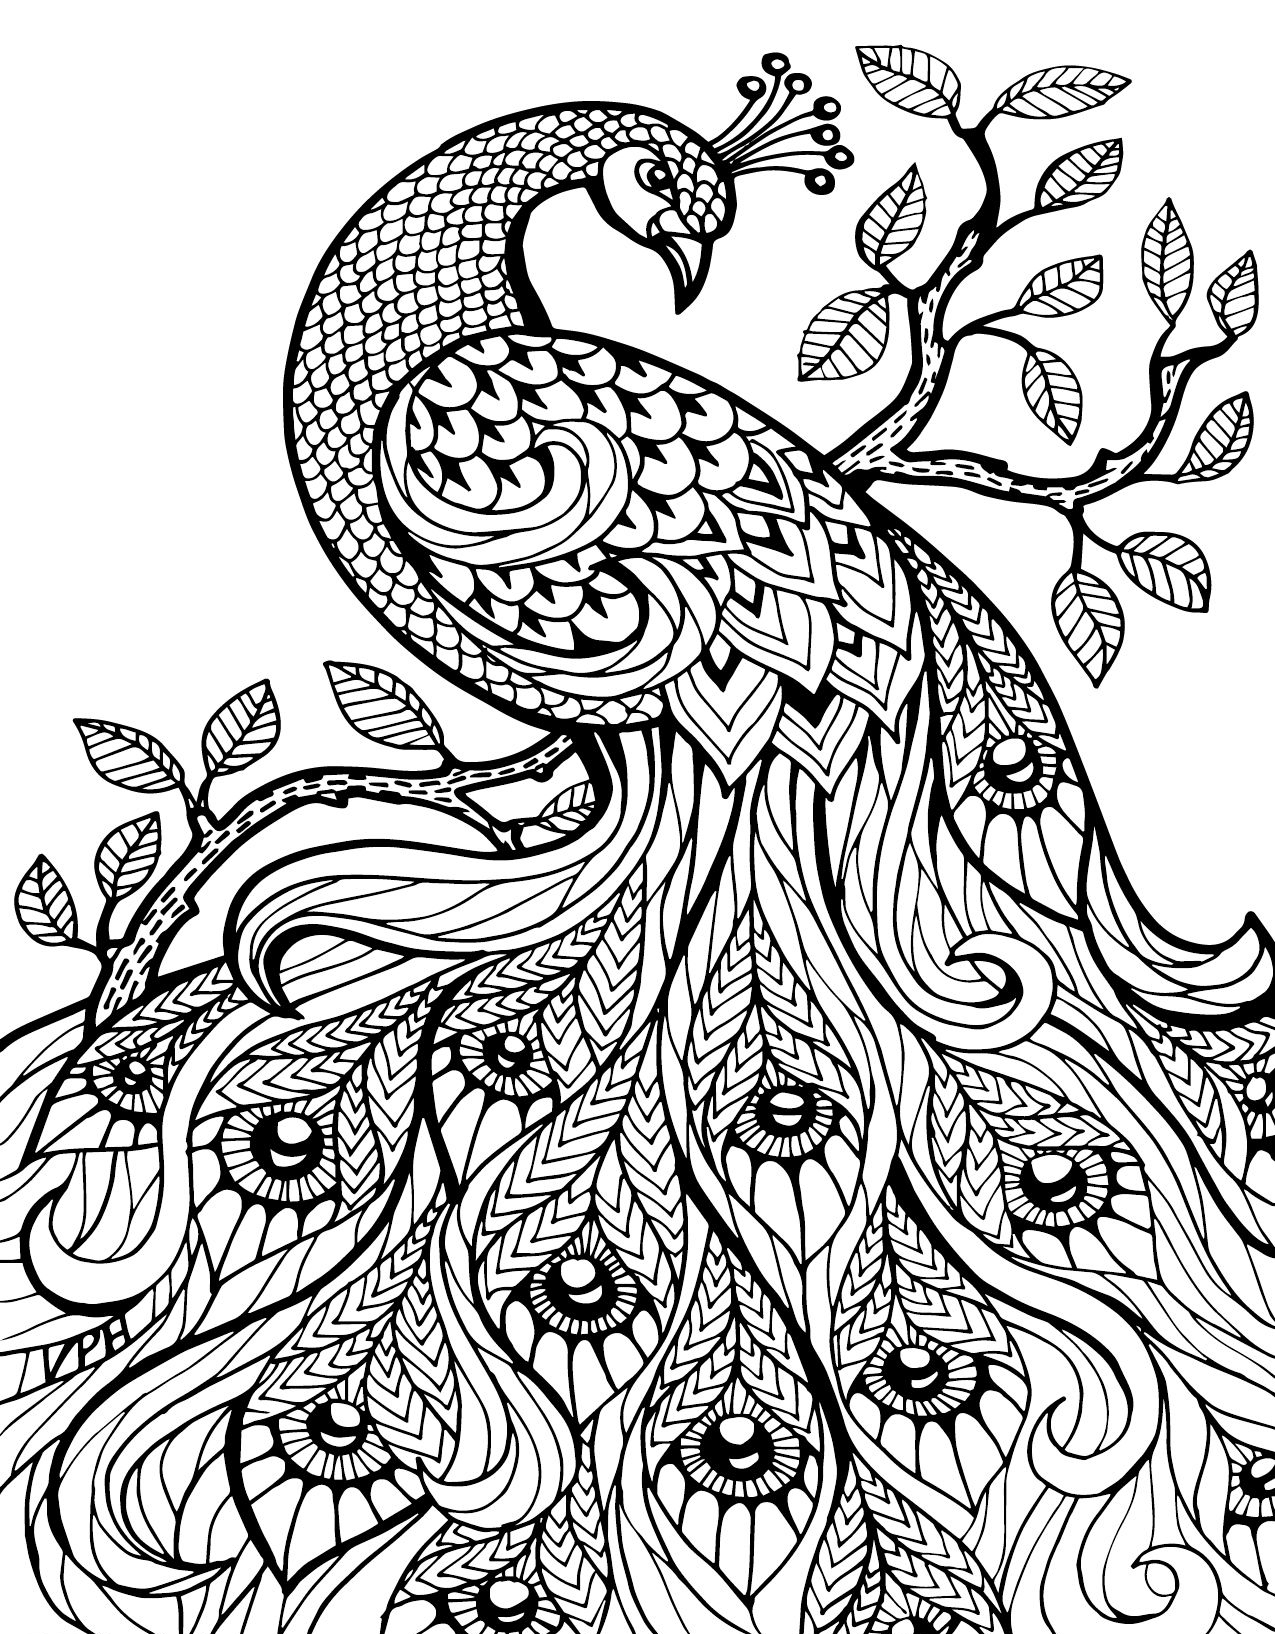 peacock coloring peacock coloring pages for kids coloring peacock